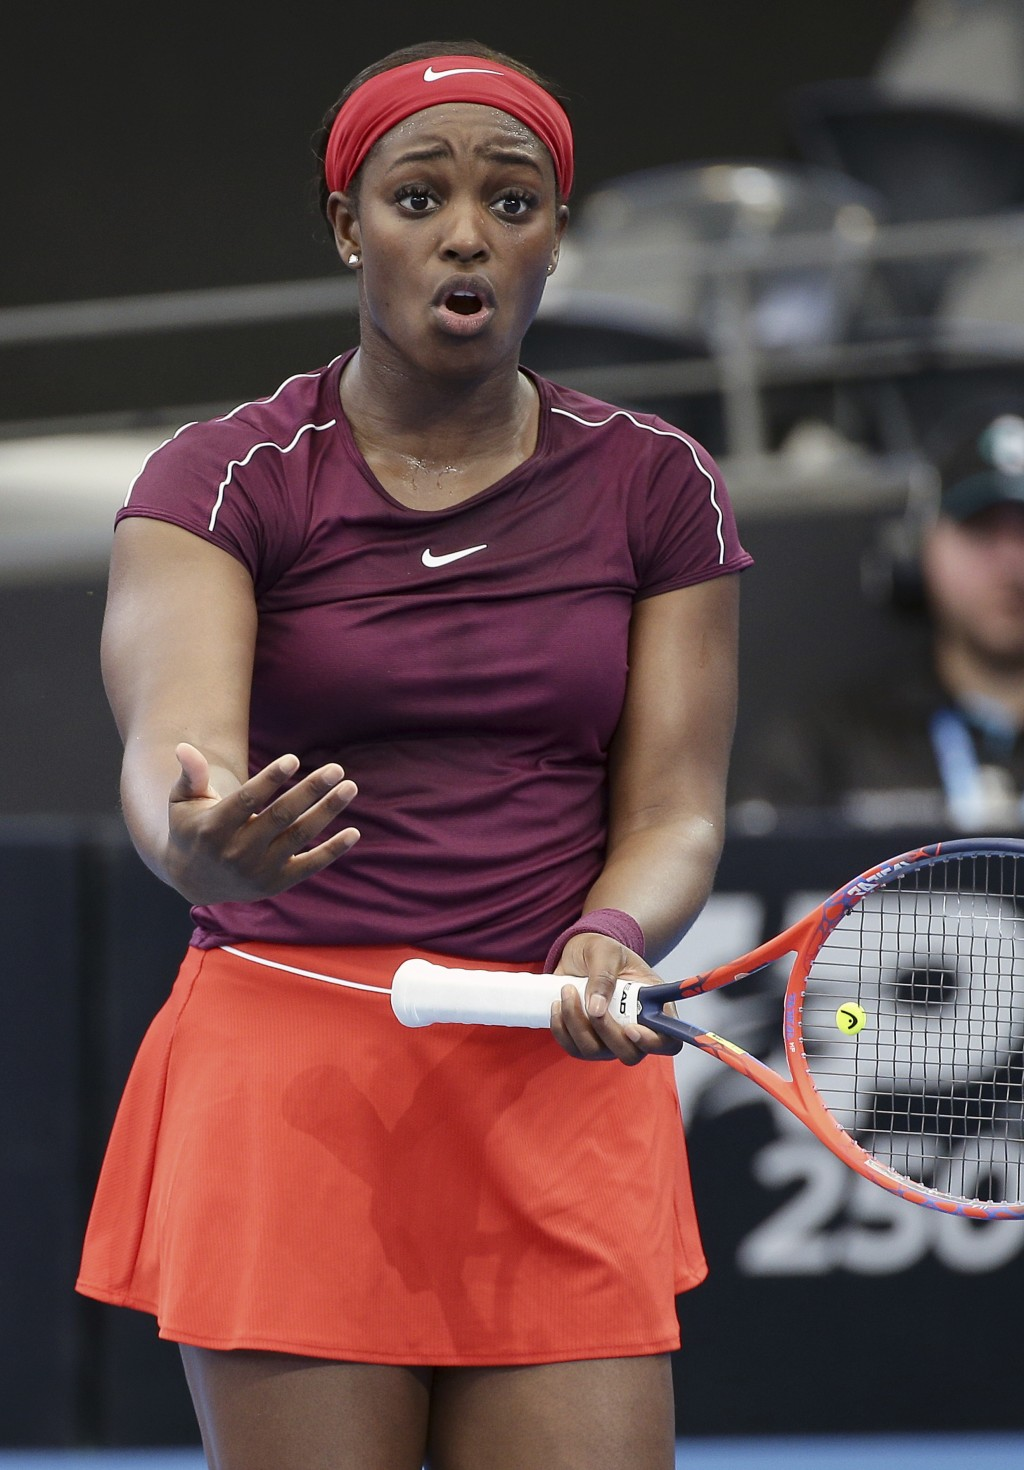 Sloane Stephens of the United States reacts after missing a shot during her match against Johanna Konta of Britain at the Brisbane International tenni